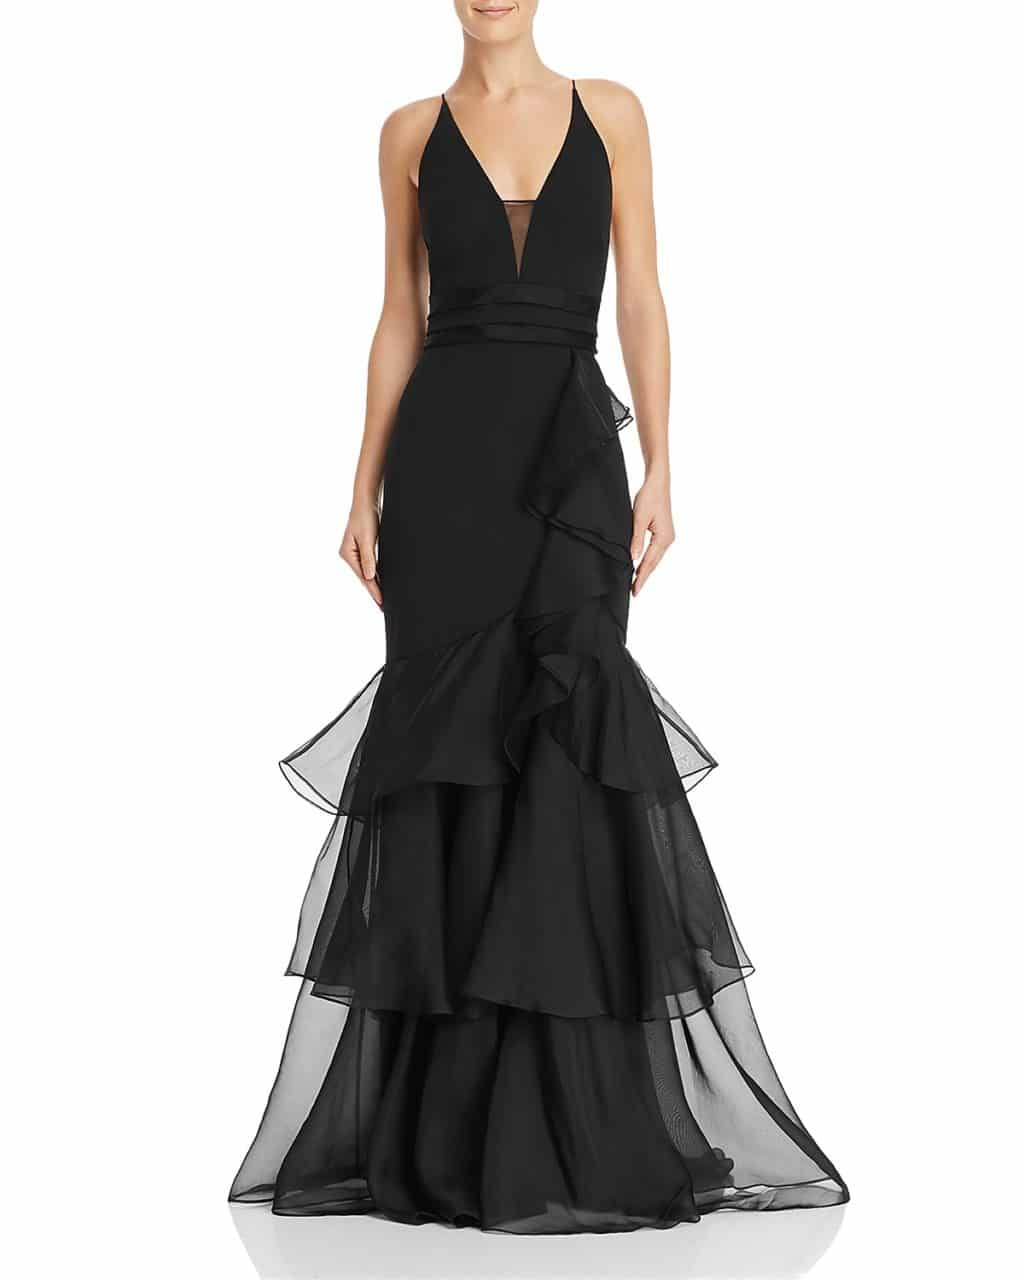 AIDAN MATTOX Tiered-Ruffle Crepe Black Gown - We Select Dresses